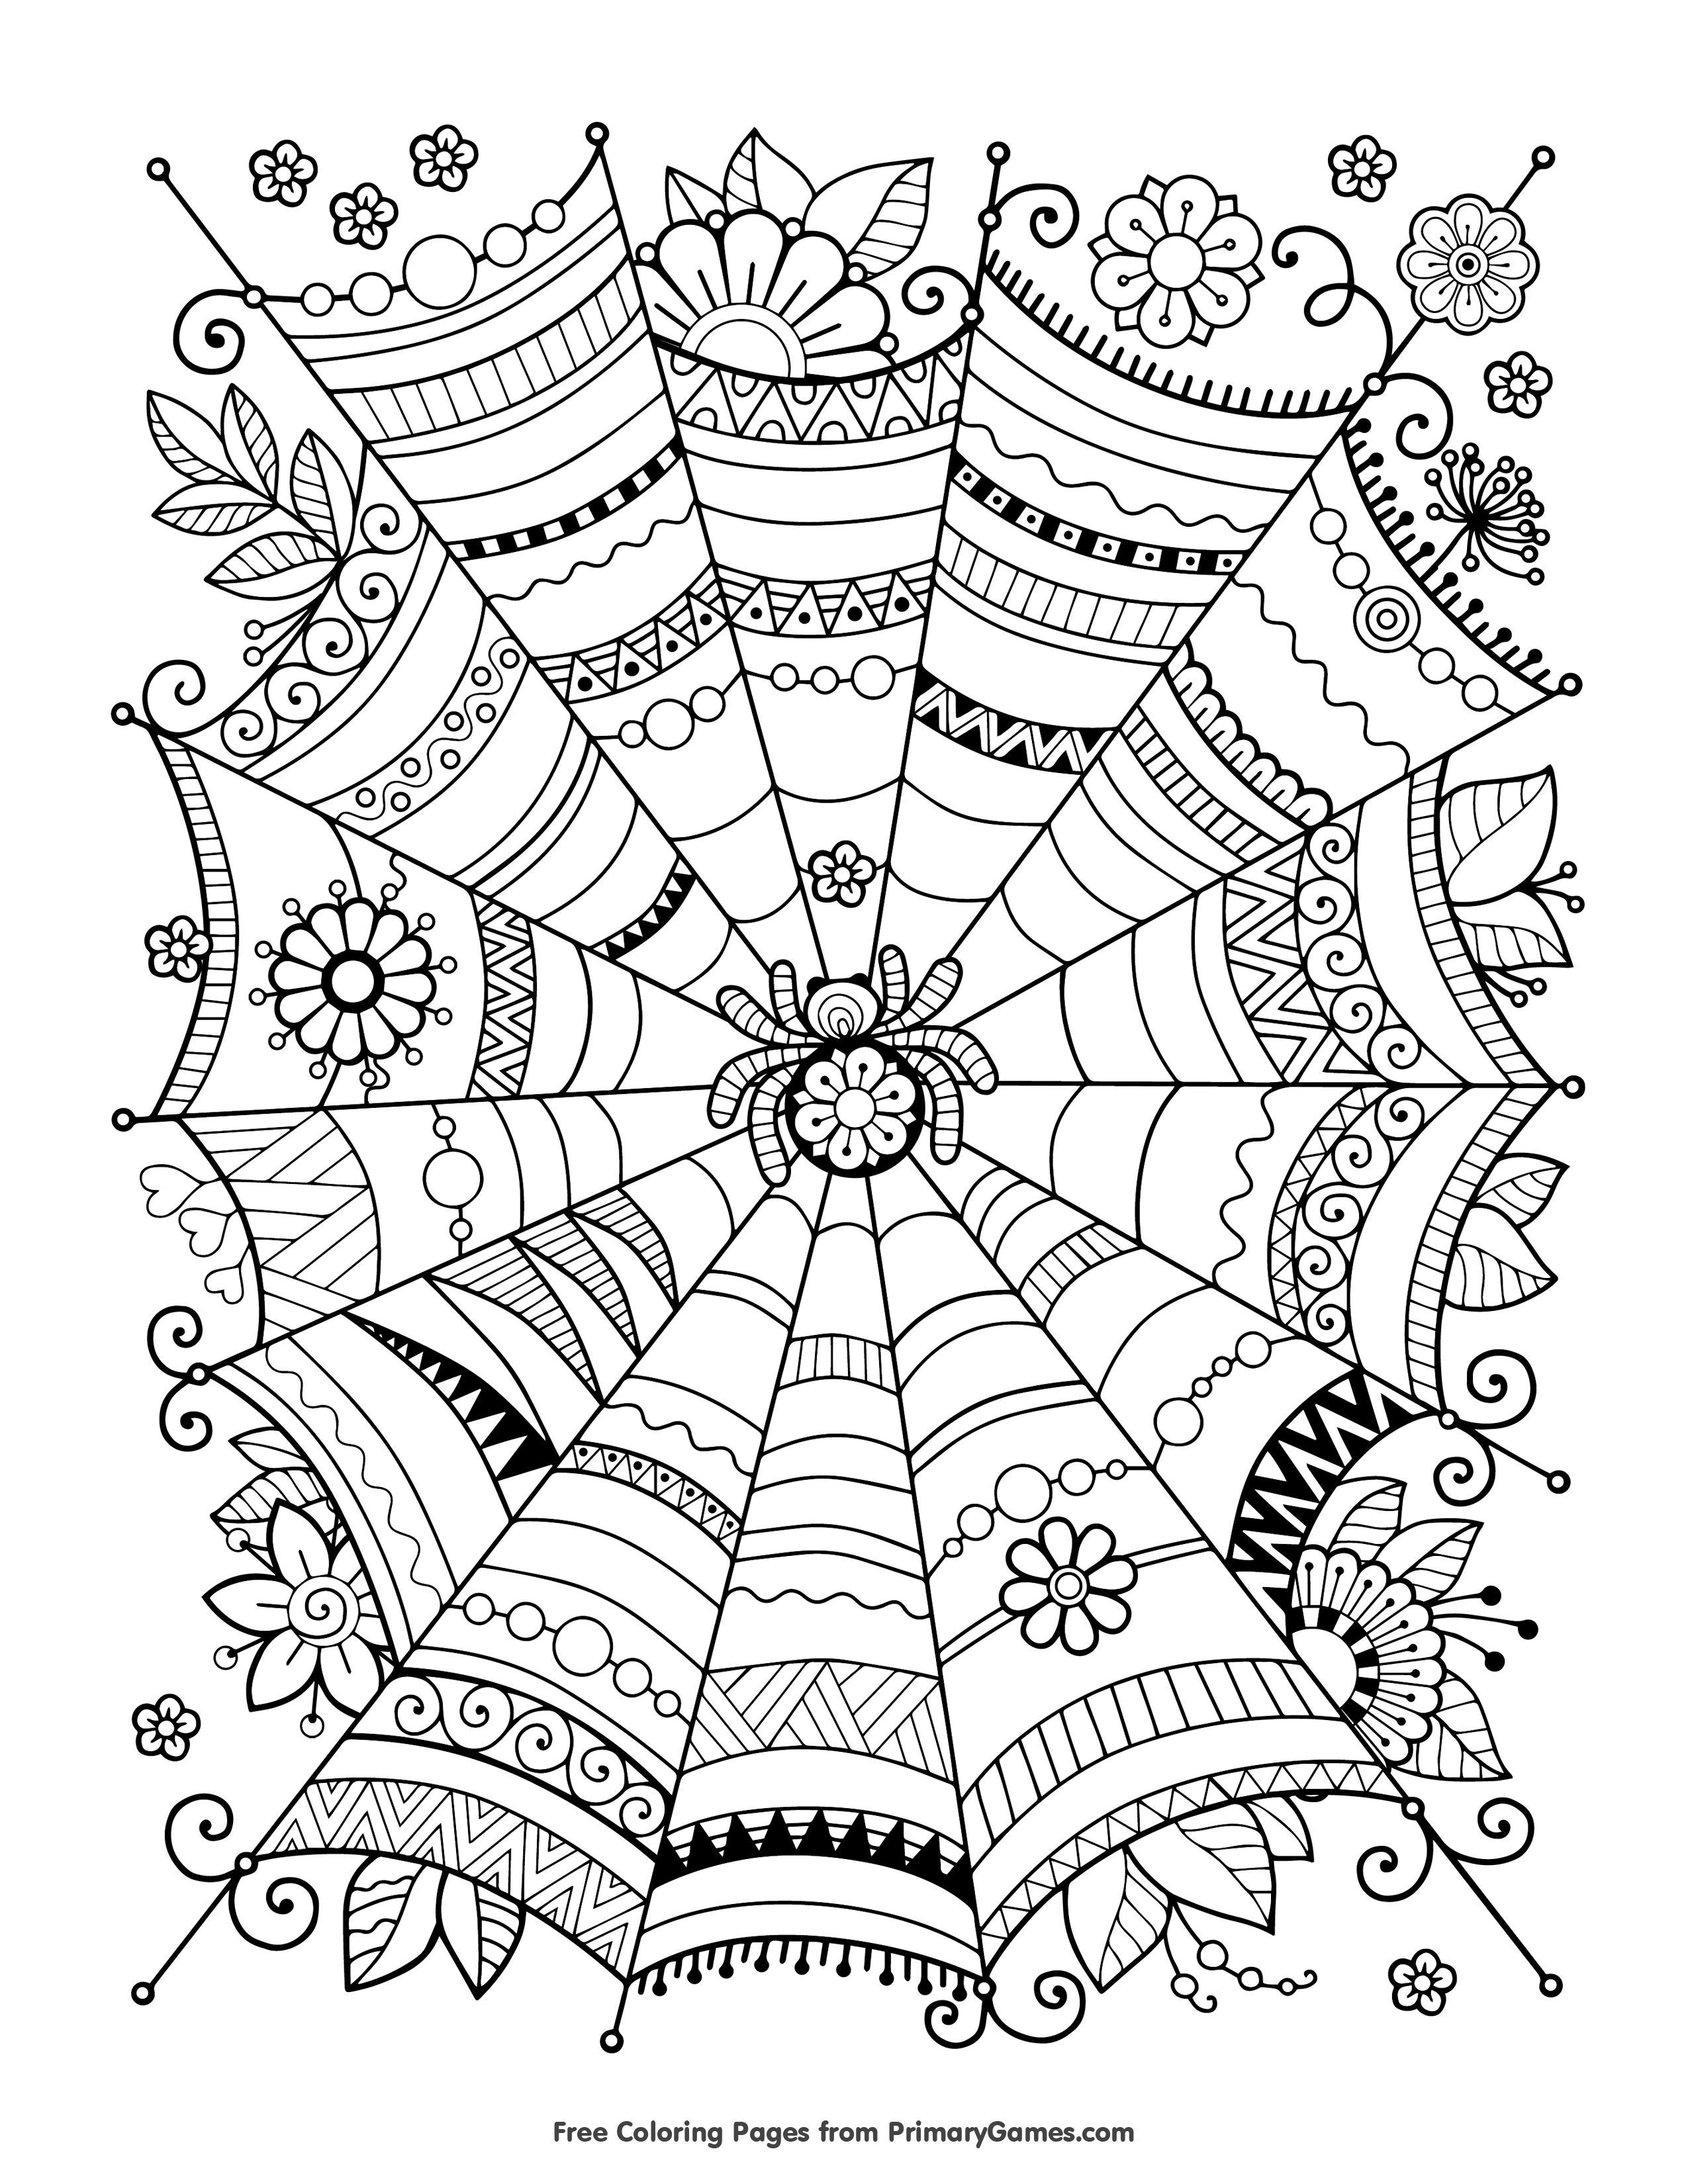 Halloween Coloring Pages Ebook Zentangle Spider Web Halloweencolorin Free Halloween Coloring Pages Halloween Coloring Pages Printable Halloween Coloring Book